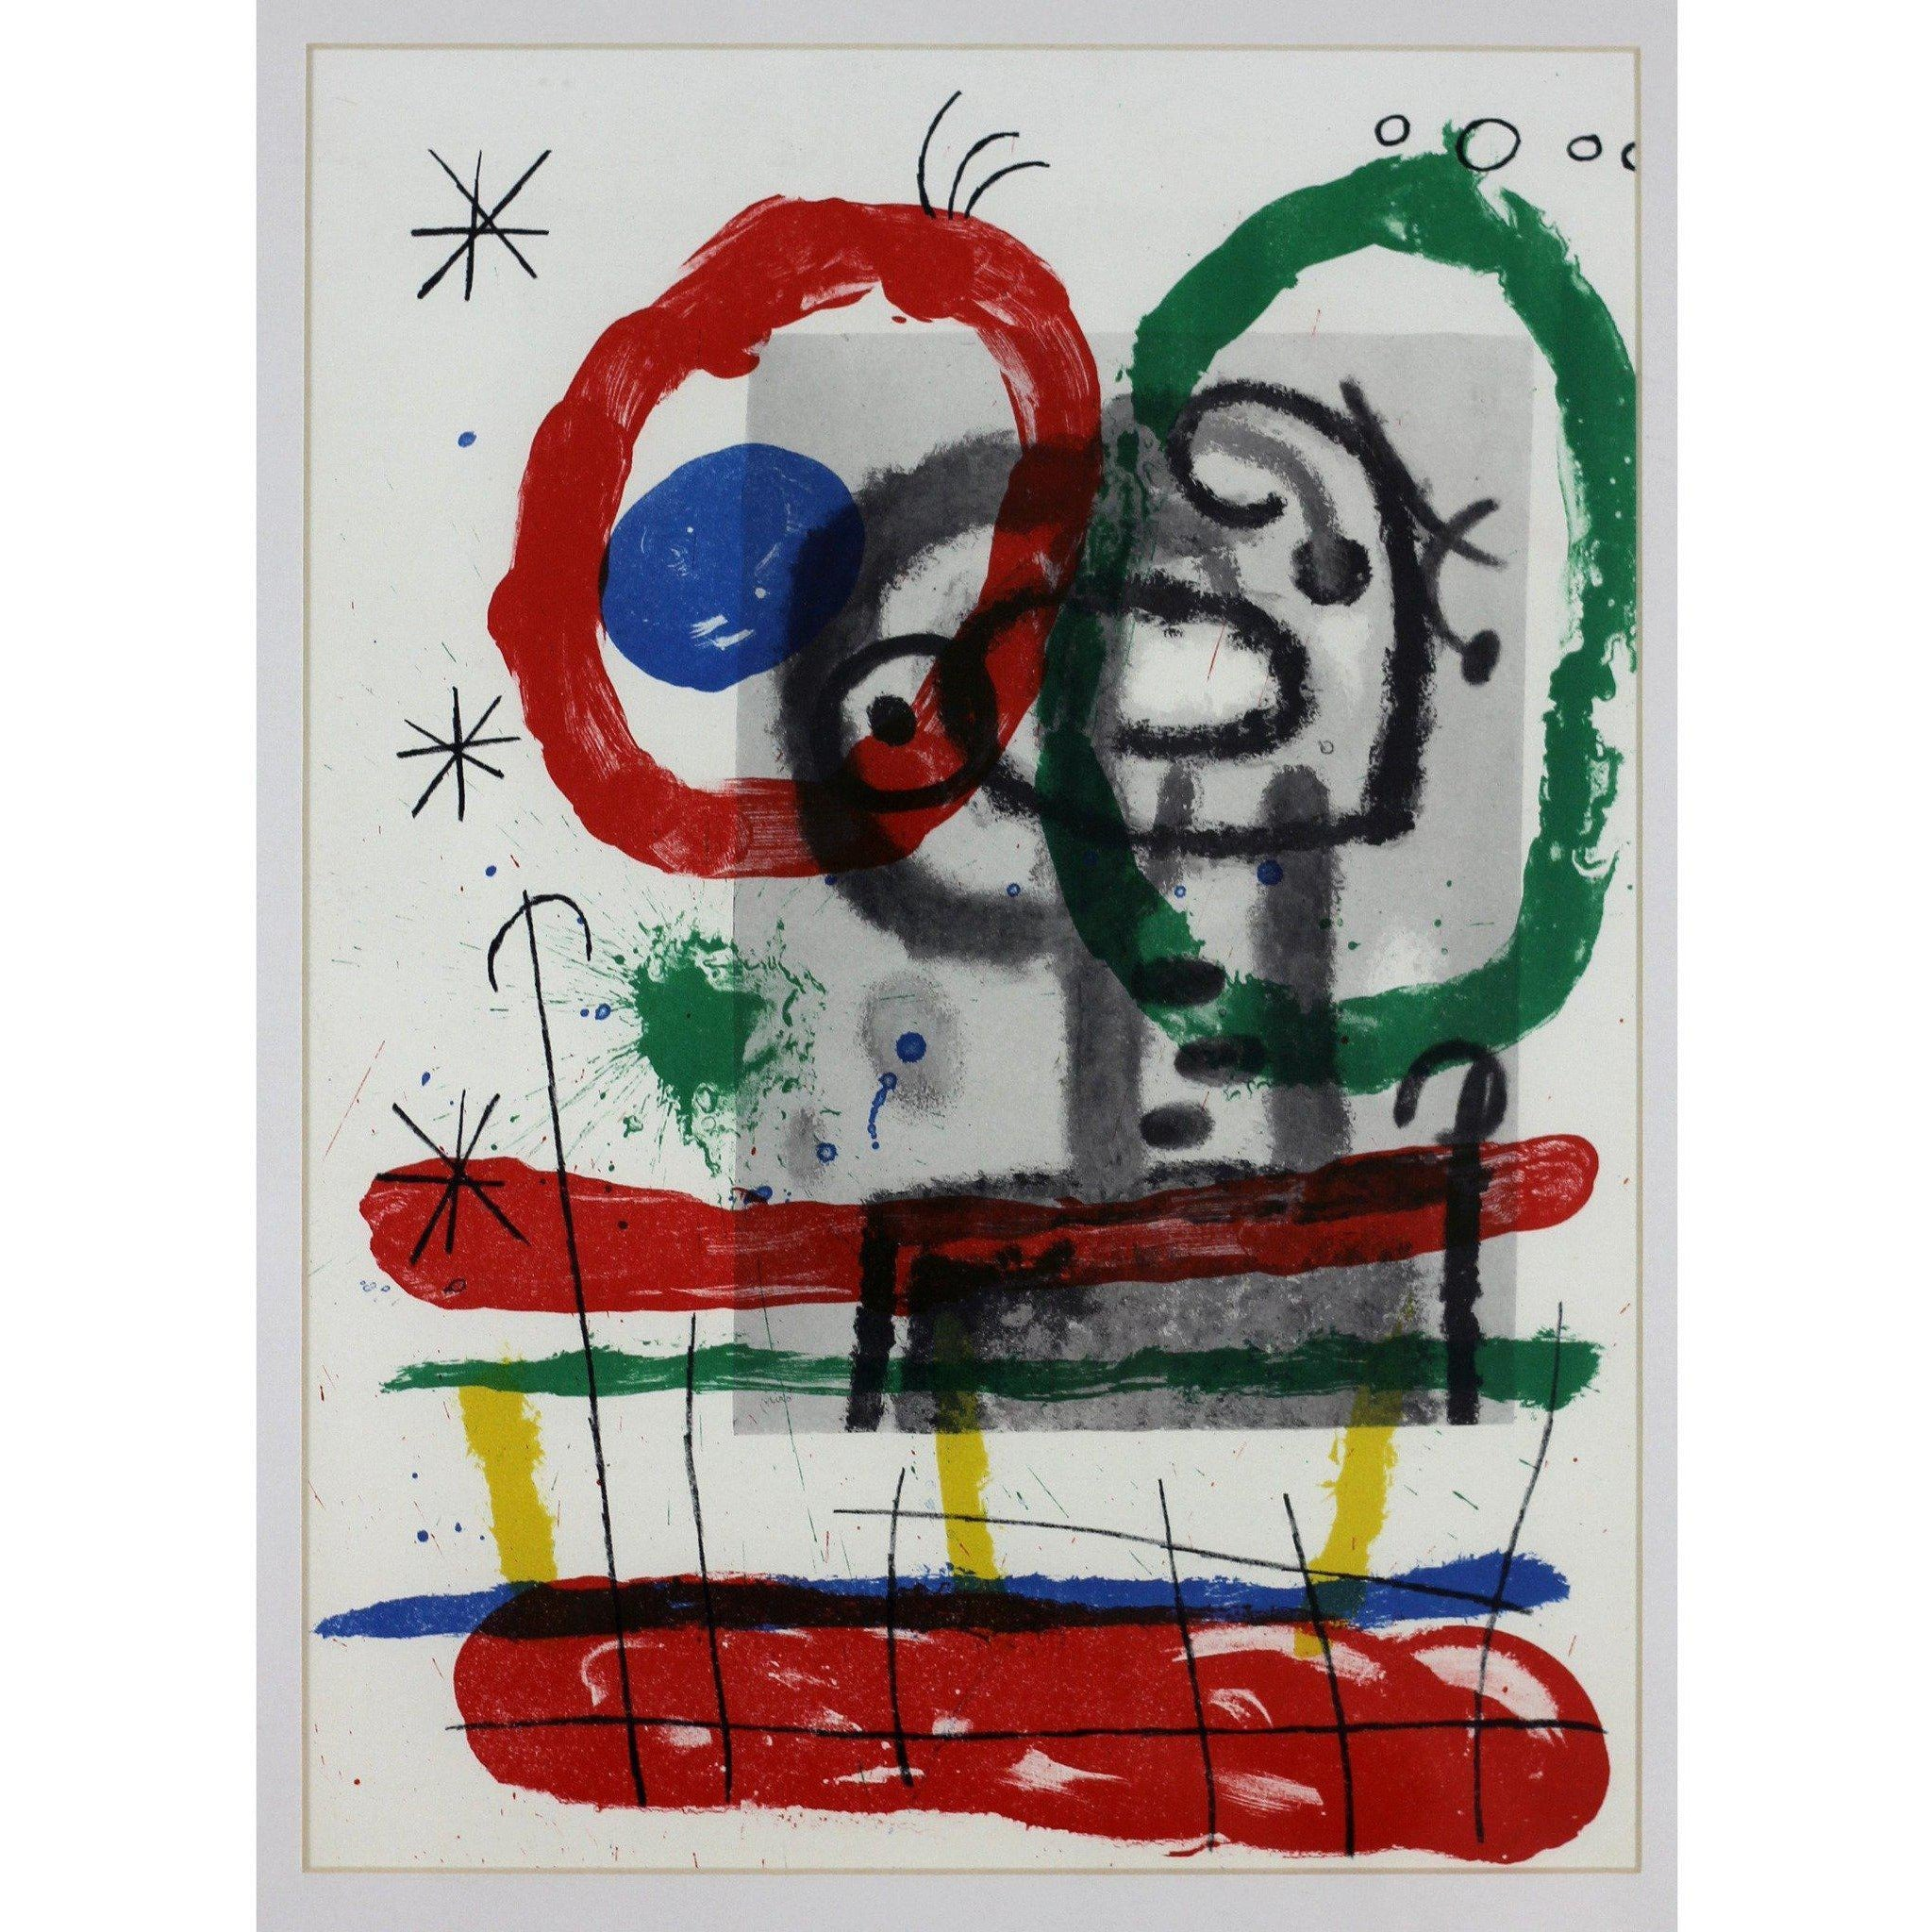 Joan Miro Ltd Ed Lithograph - Derrier le mirroir (B)